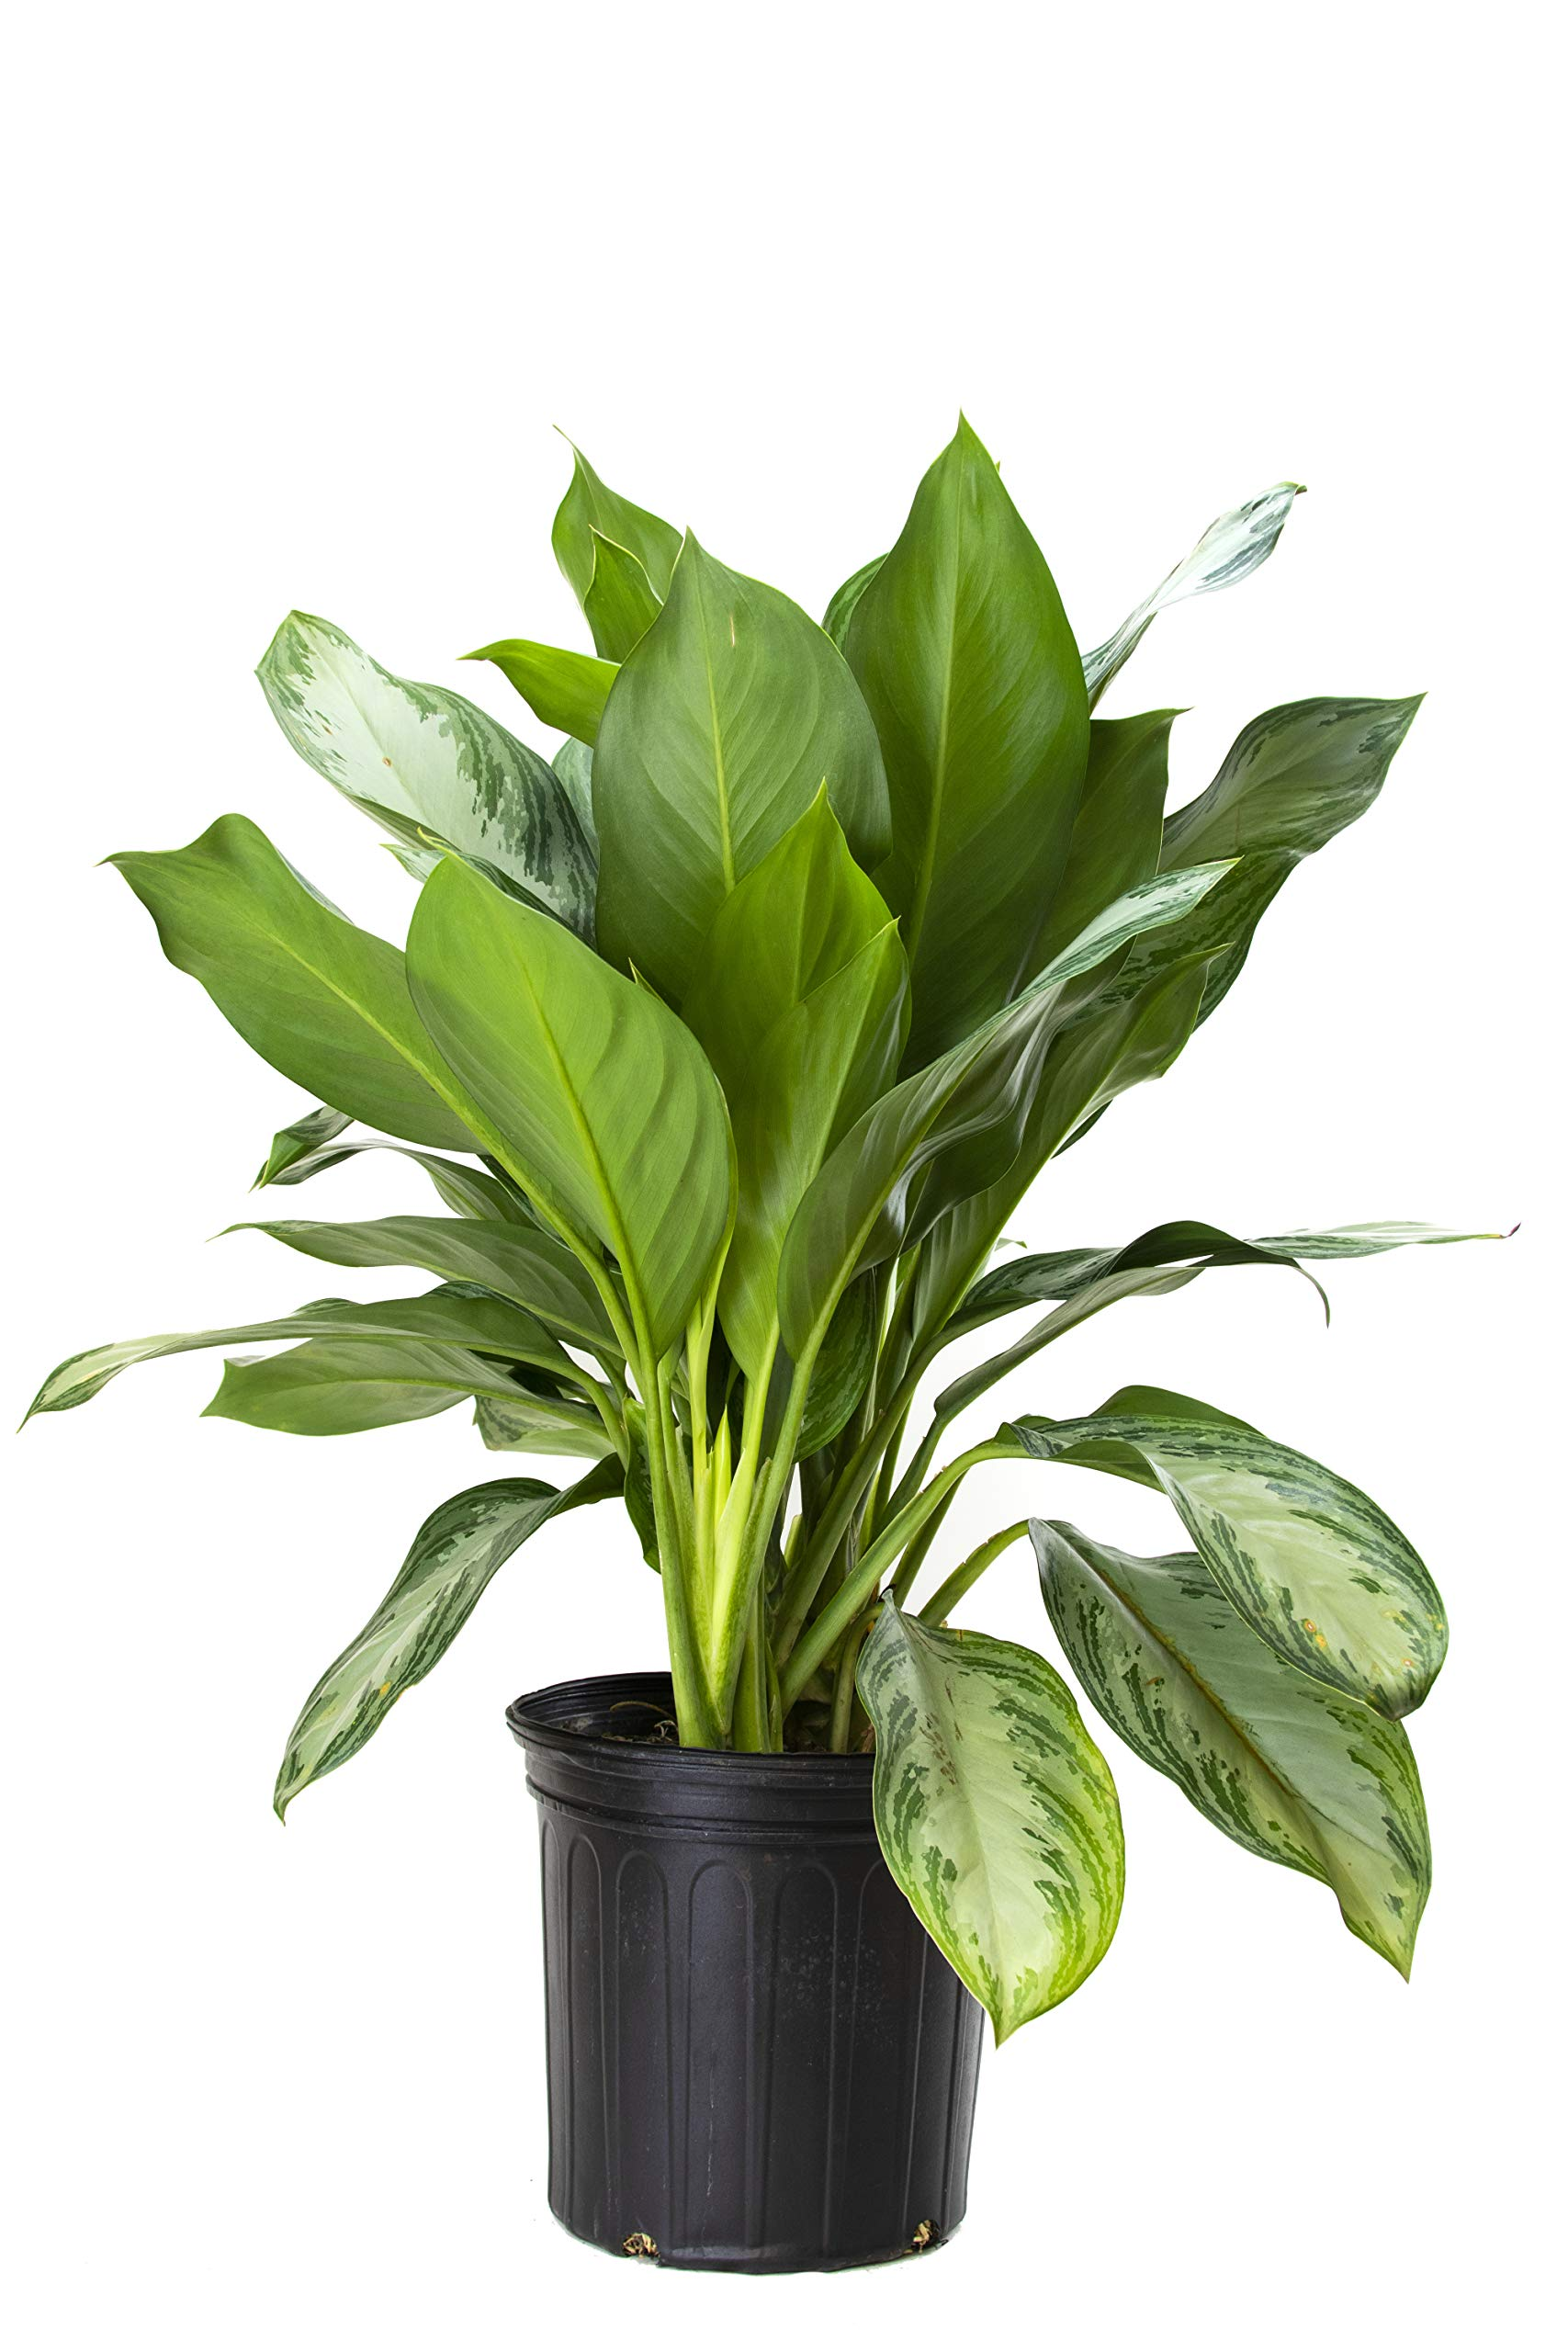 Burpee Aglaonema Chinese Evergreen 'Silver Bay' in an 8'' Pot